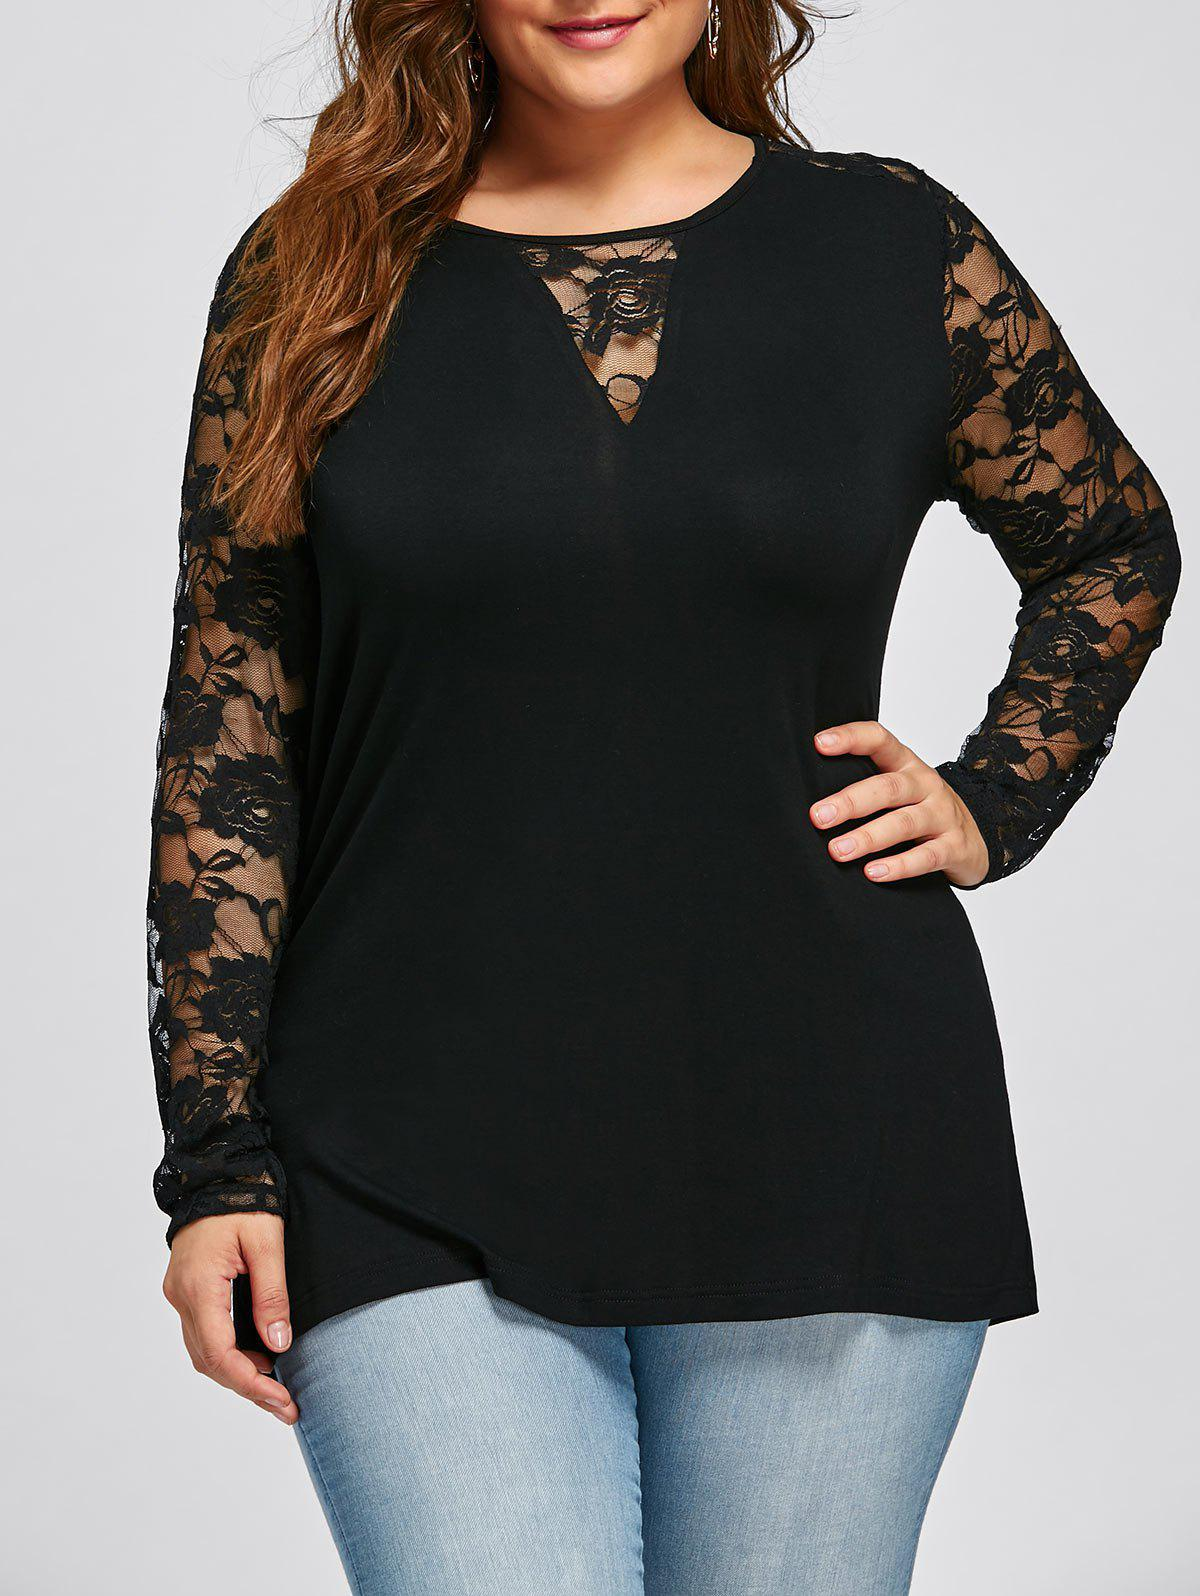 Plus Size Lace Yoke Long Sleeve Top - BLACK XL